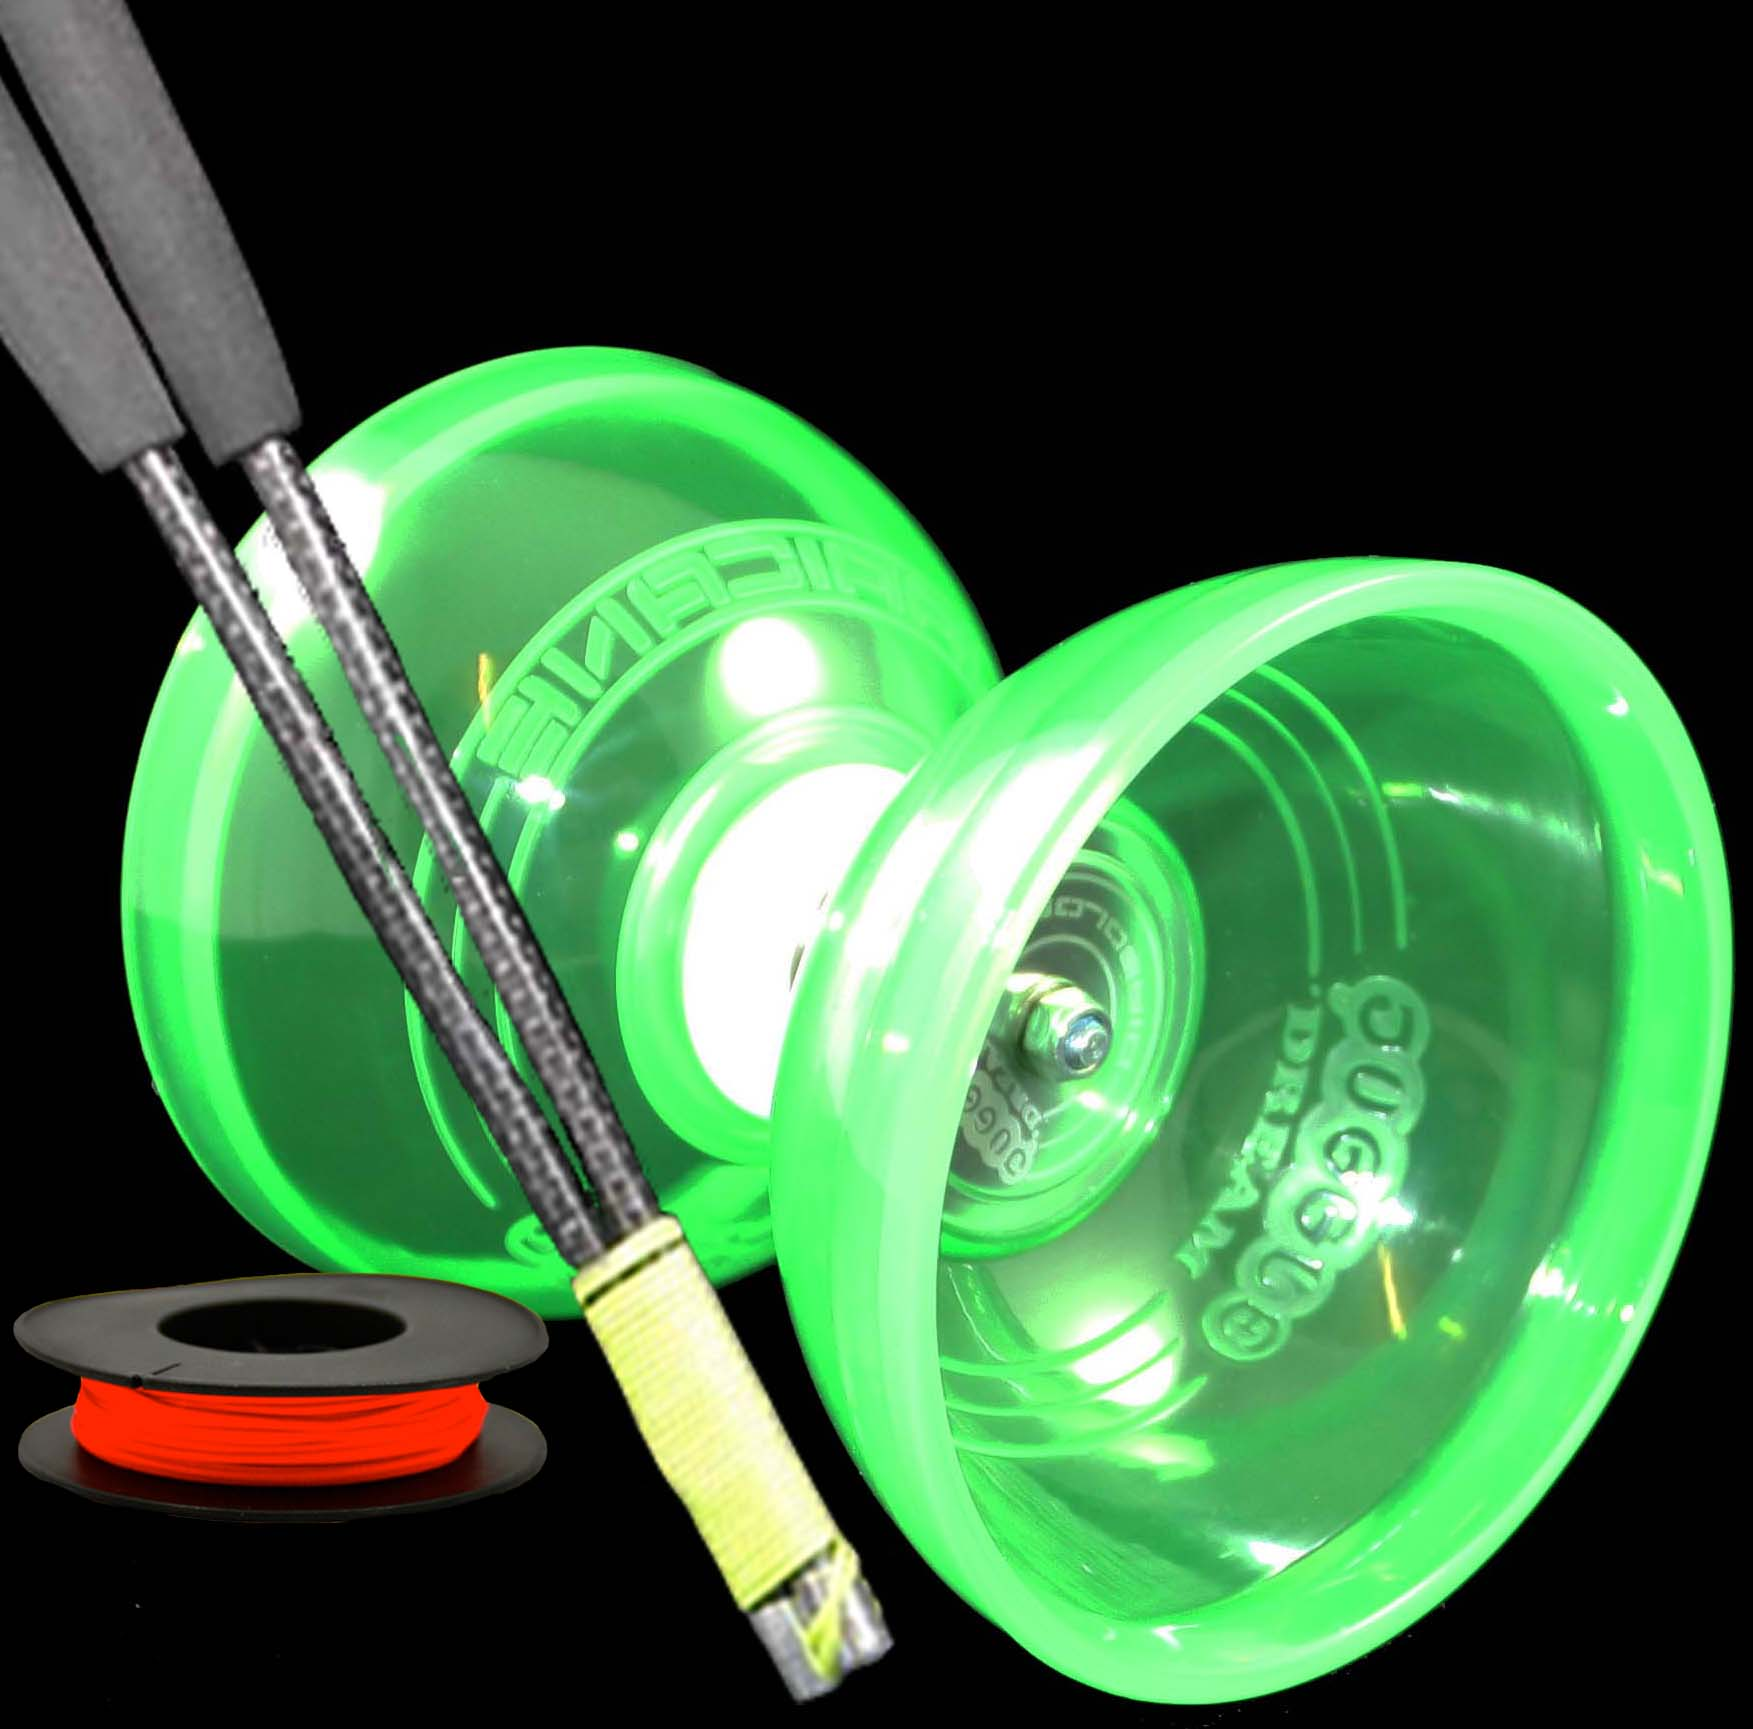 Jumbo Hurricane Triple Bearing Diabolo, Supergrind Carbon Handsticks and 5m String